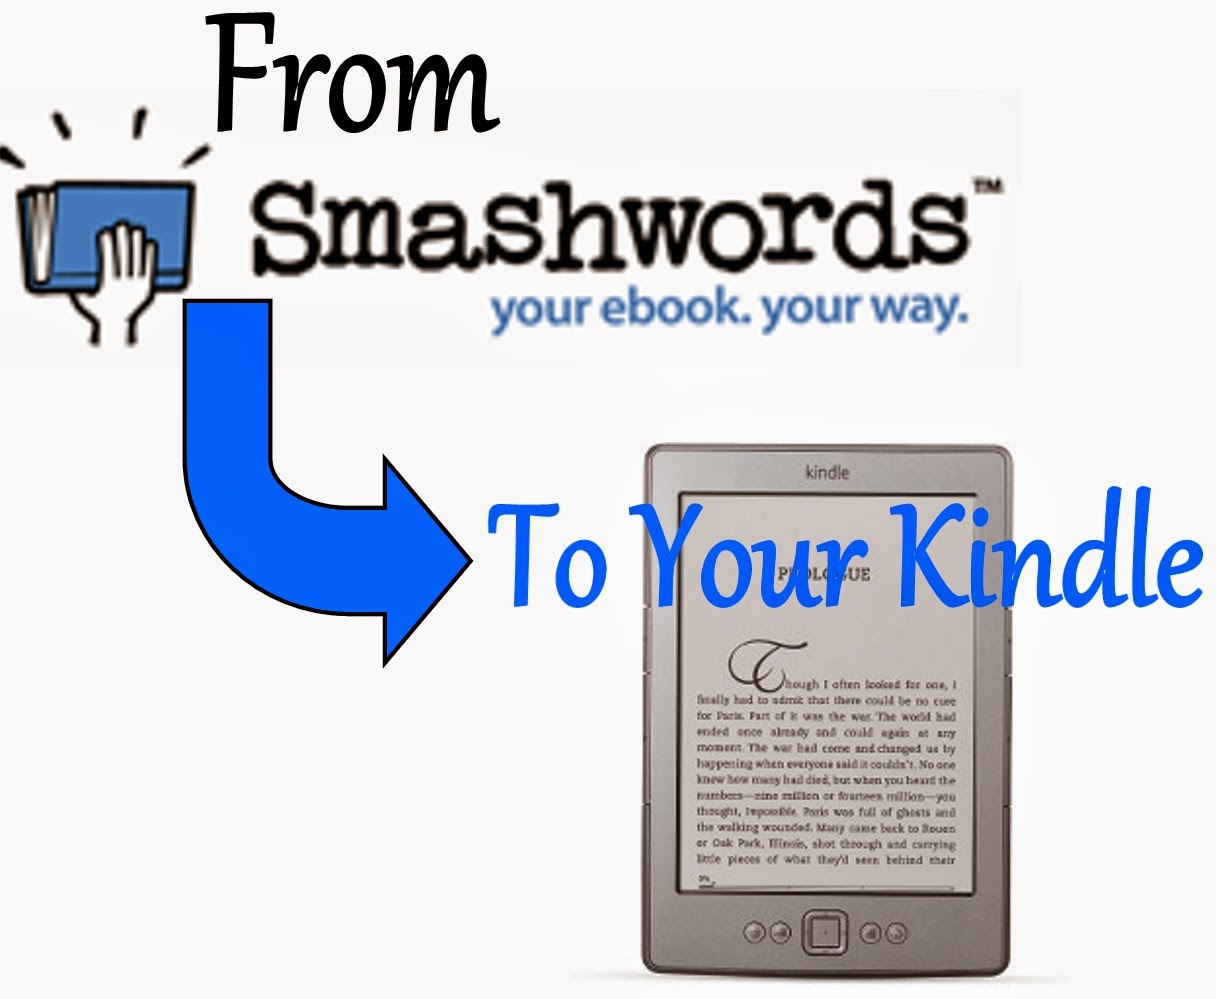 Permalink. Thanks for posting this blog. It was informative and for me, timely because I got up this morning with the goal of uploading one of my e-books to Smashwords but wanted to check one last time to make sure I could publish it on both Smashword's and Amazon's KDP platforms.